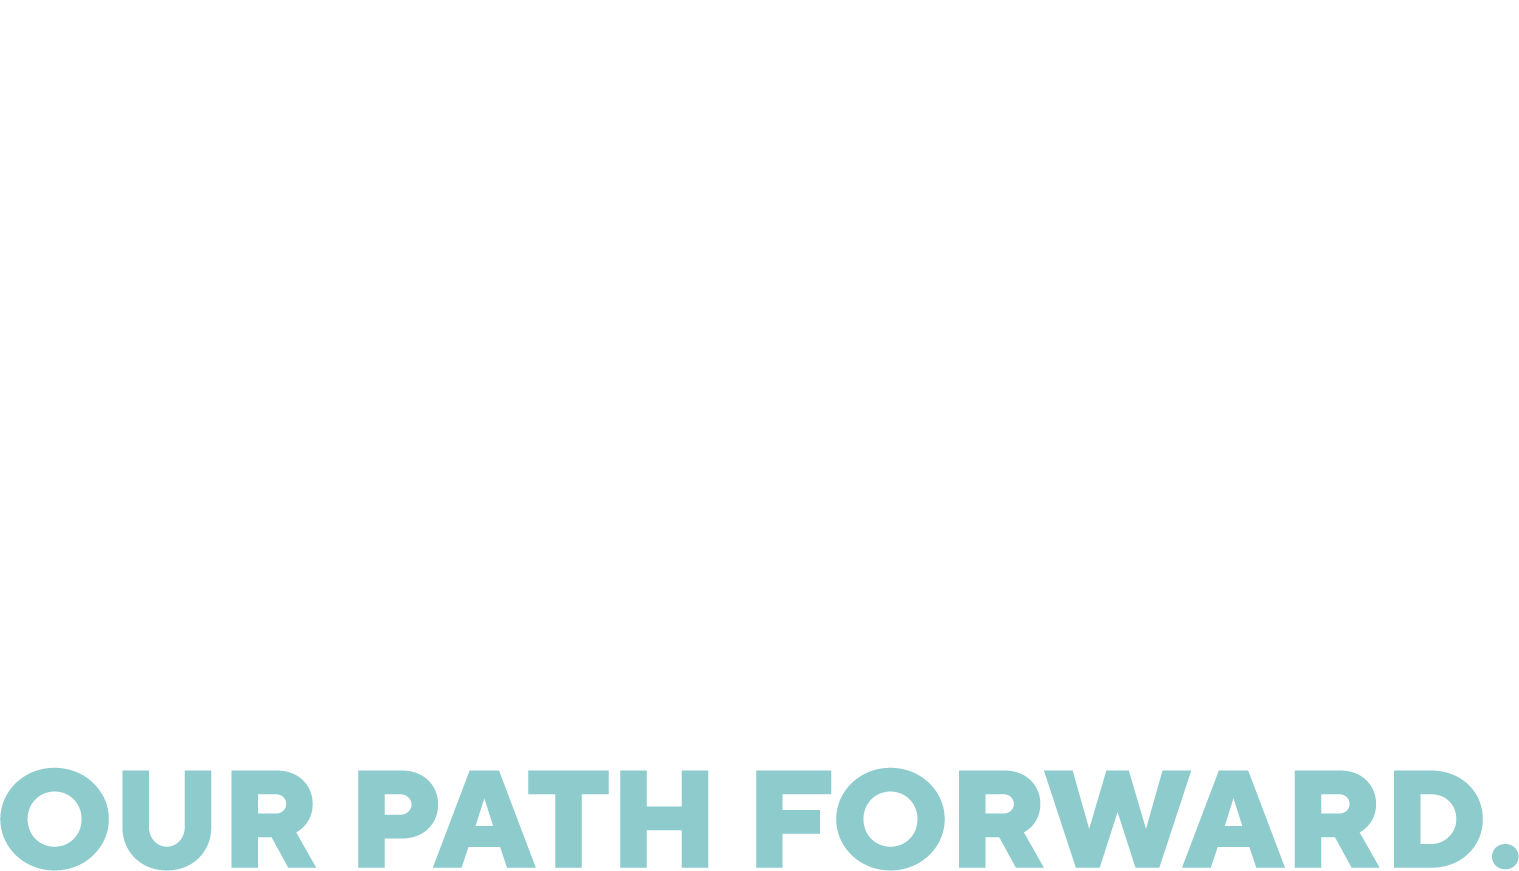 One team. Dedicated to our customer. Focused on our path forward.